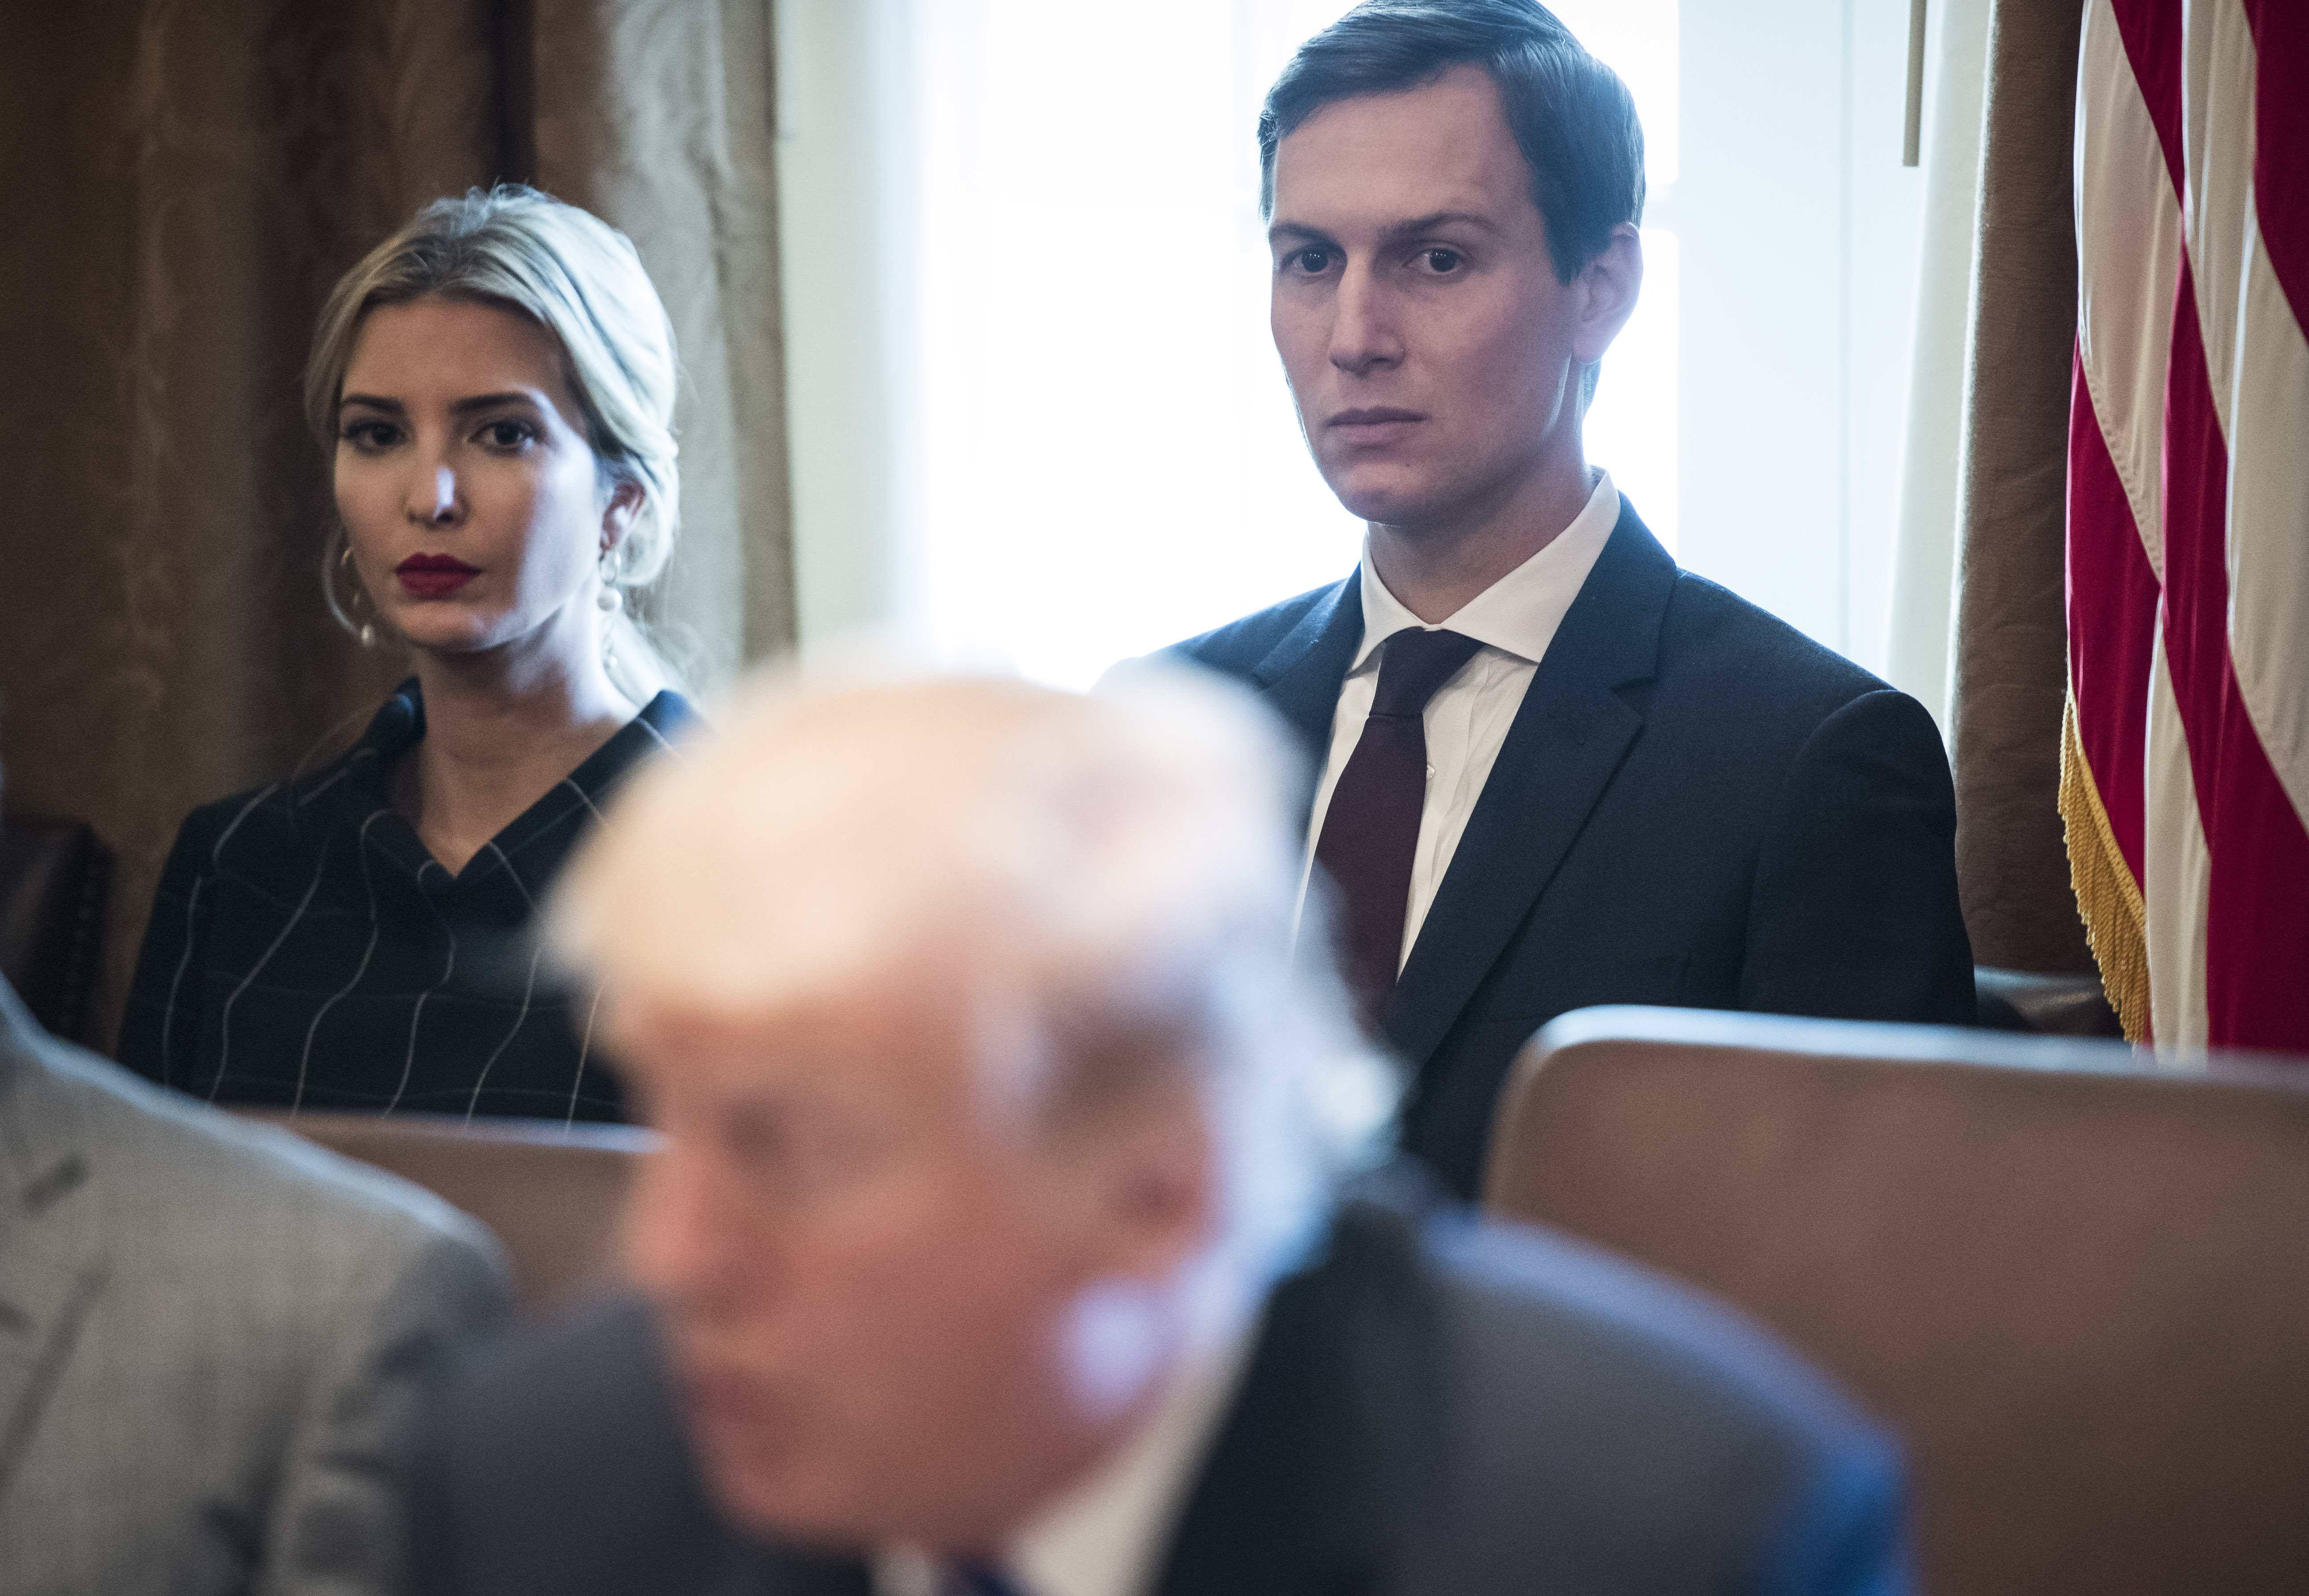 The Cybersecurity 202: Kushner's WhatsApp habit raises security concerns